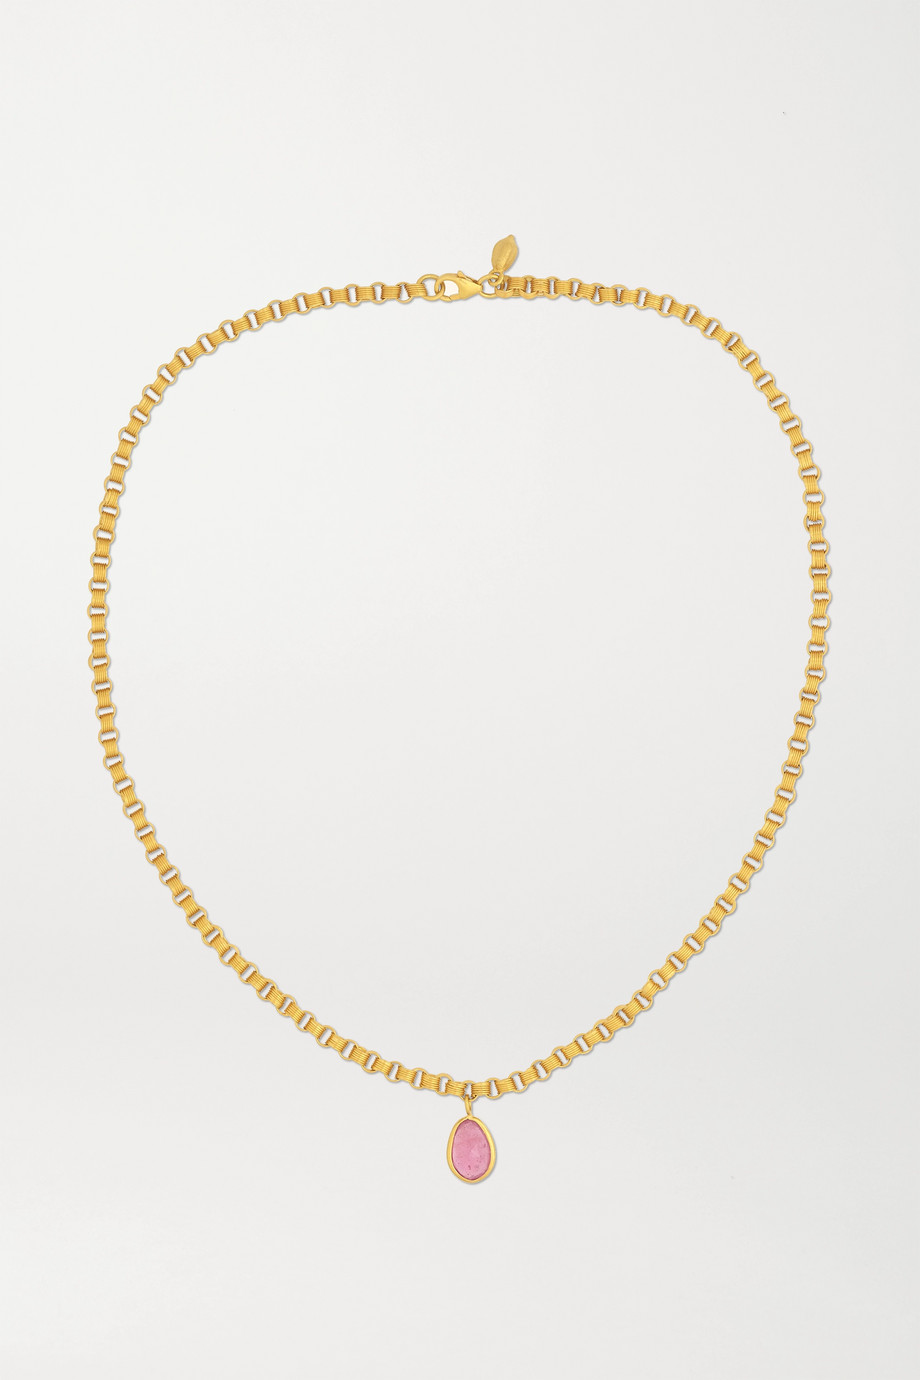 Pippa Small 18-karat gold ruby necklace